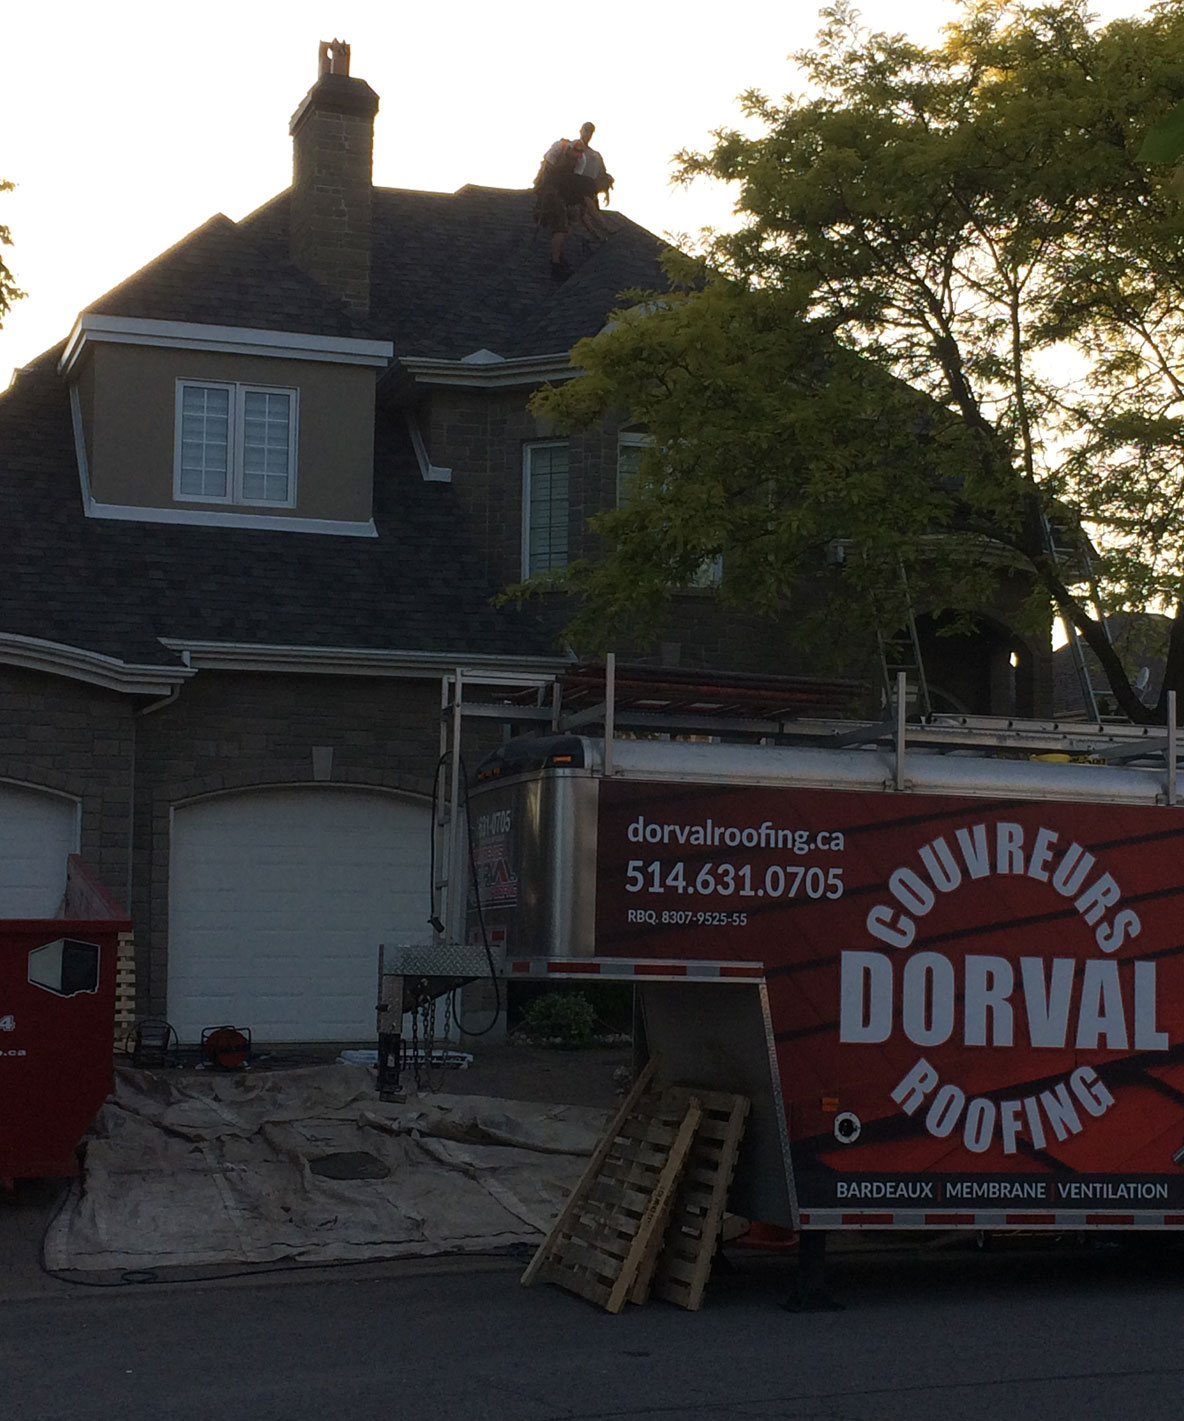 dorval_roofing1